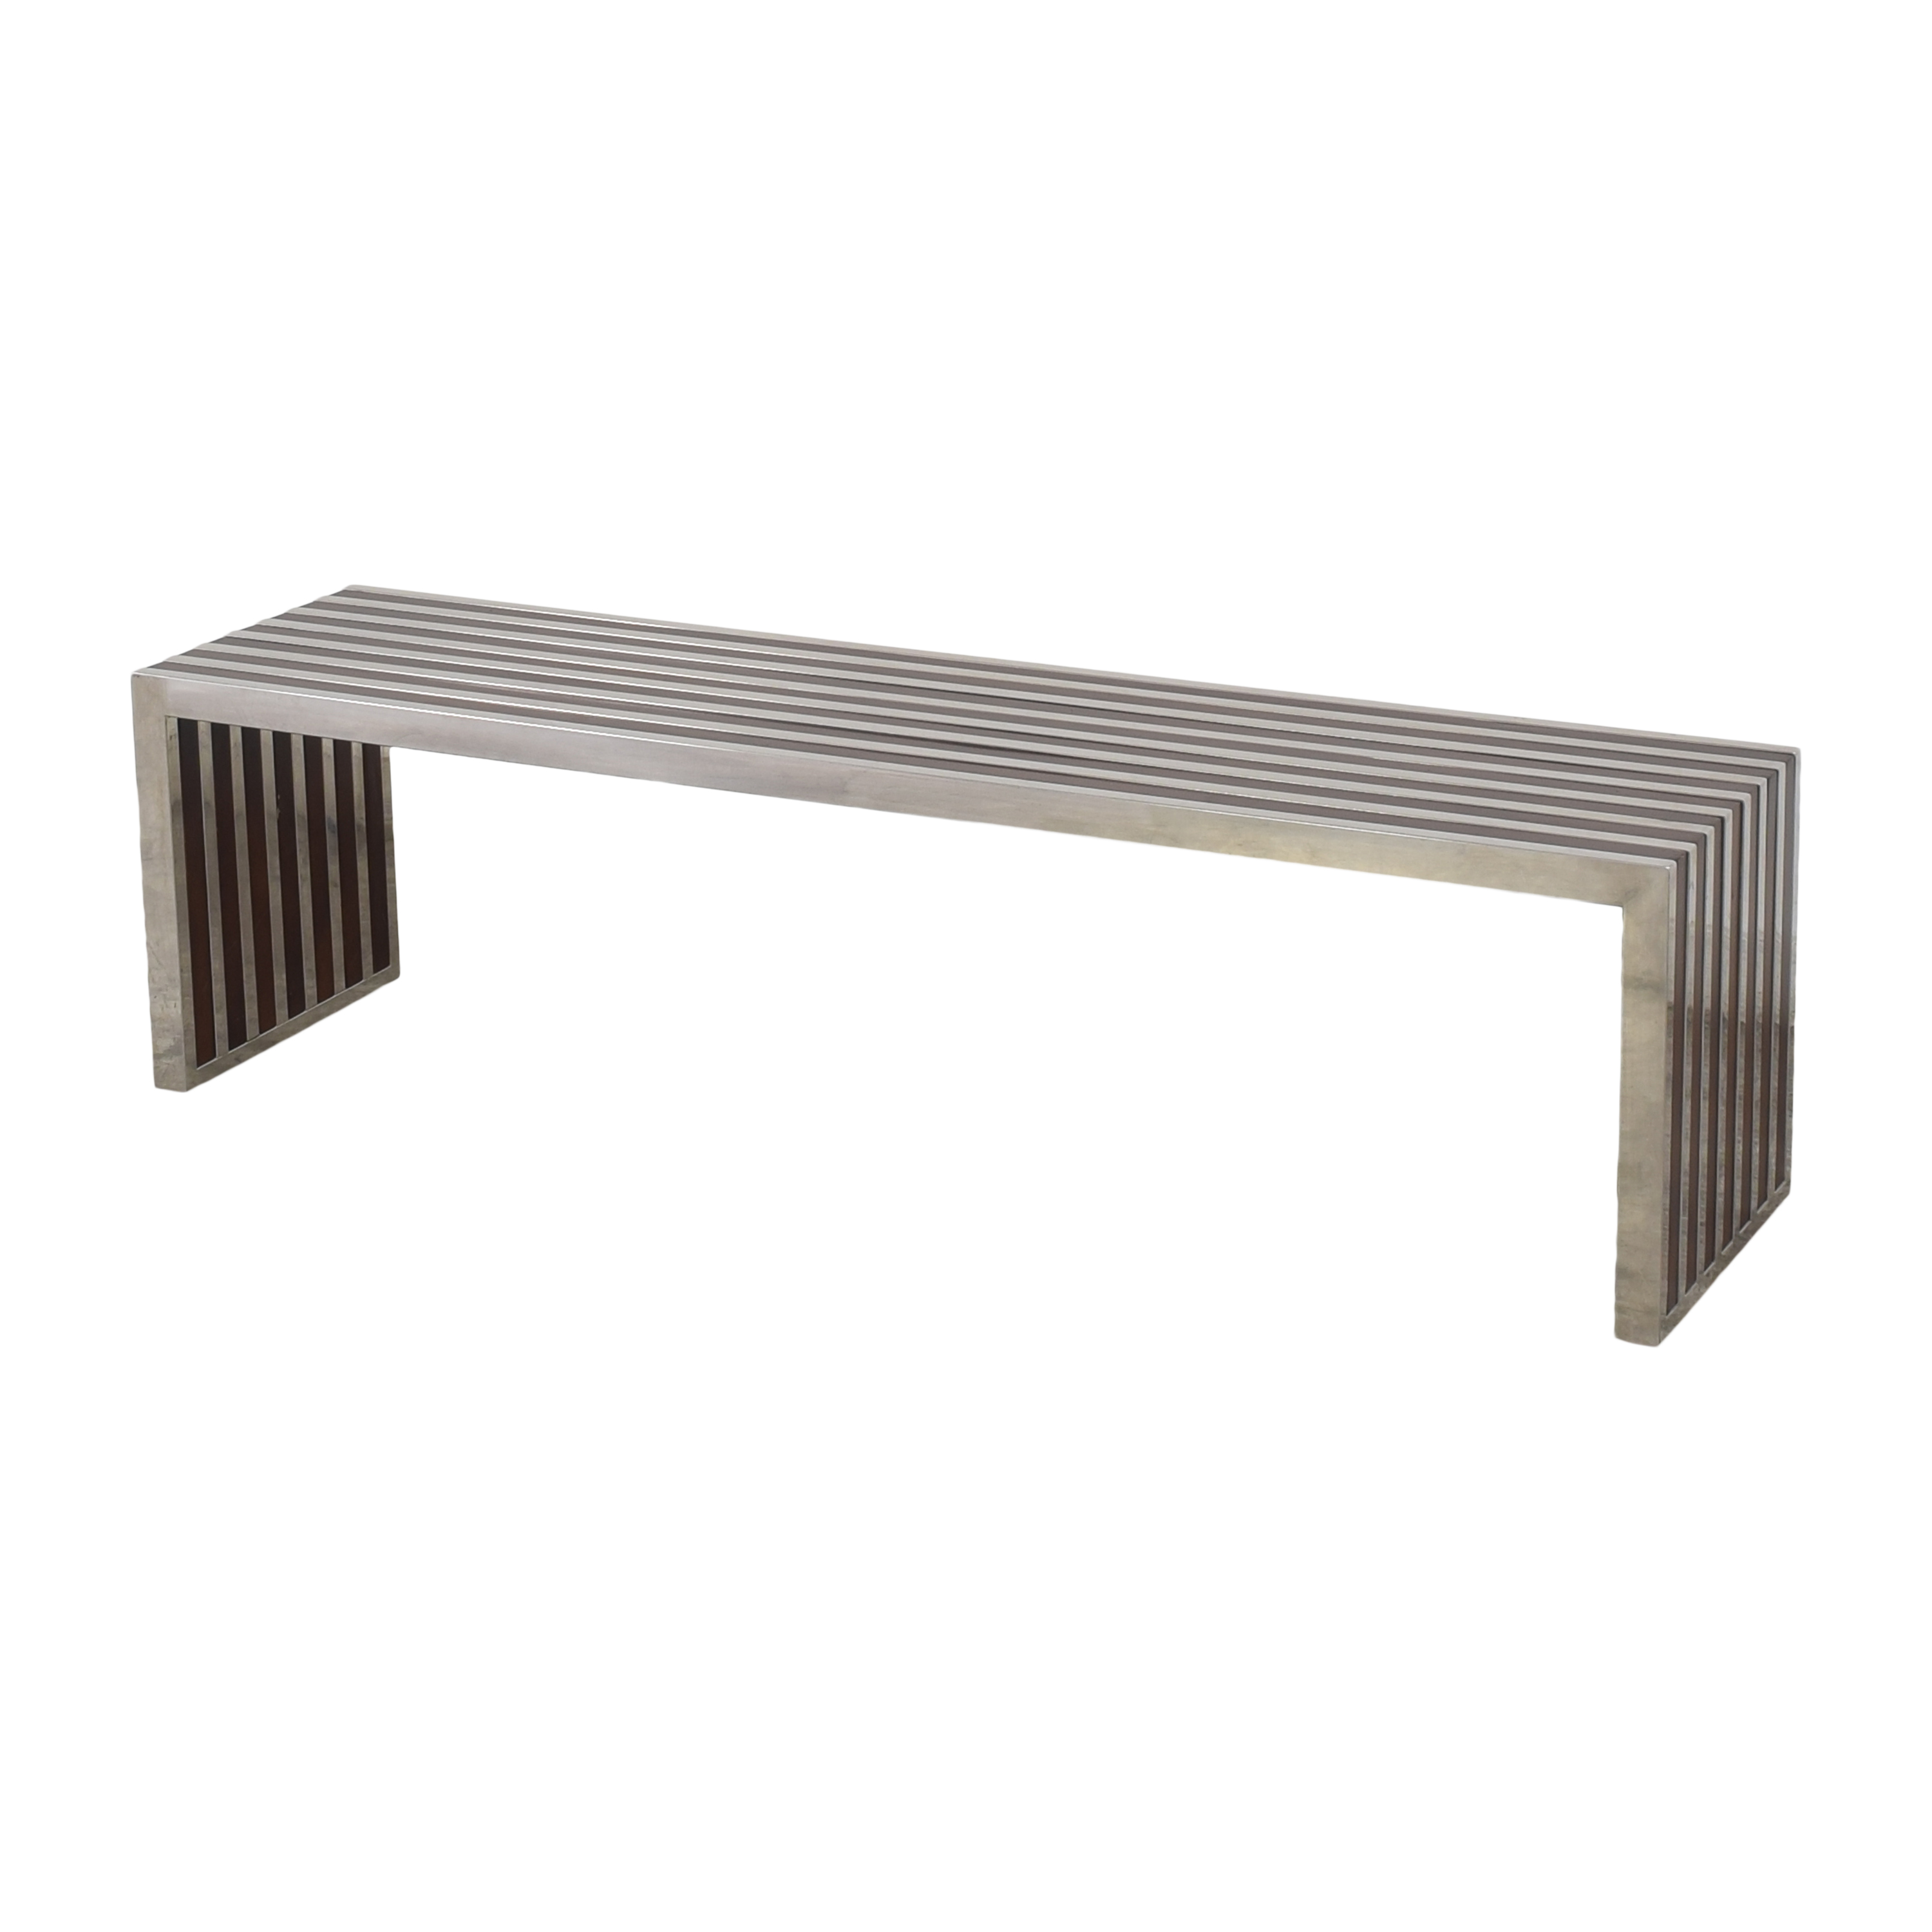 LexMod LexMod Gridiron Large Inlay Bench used